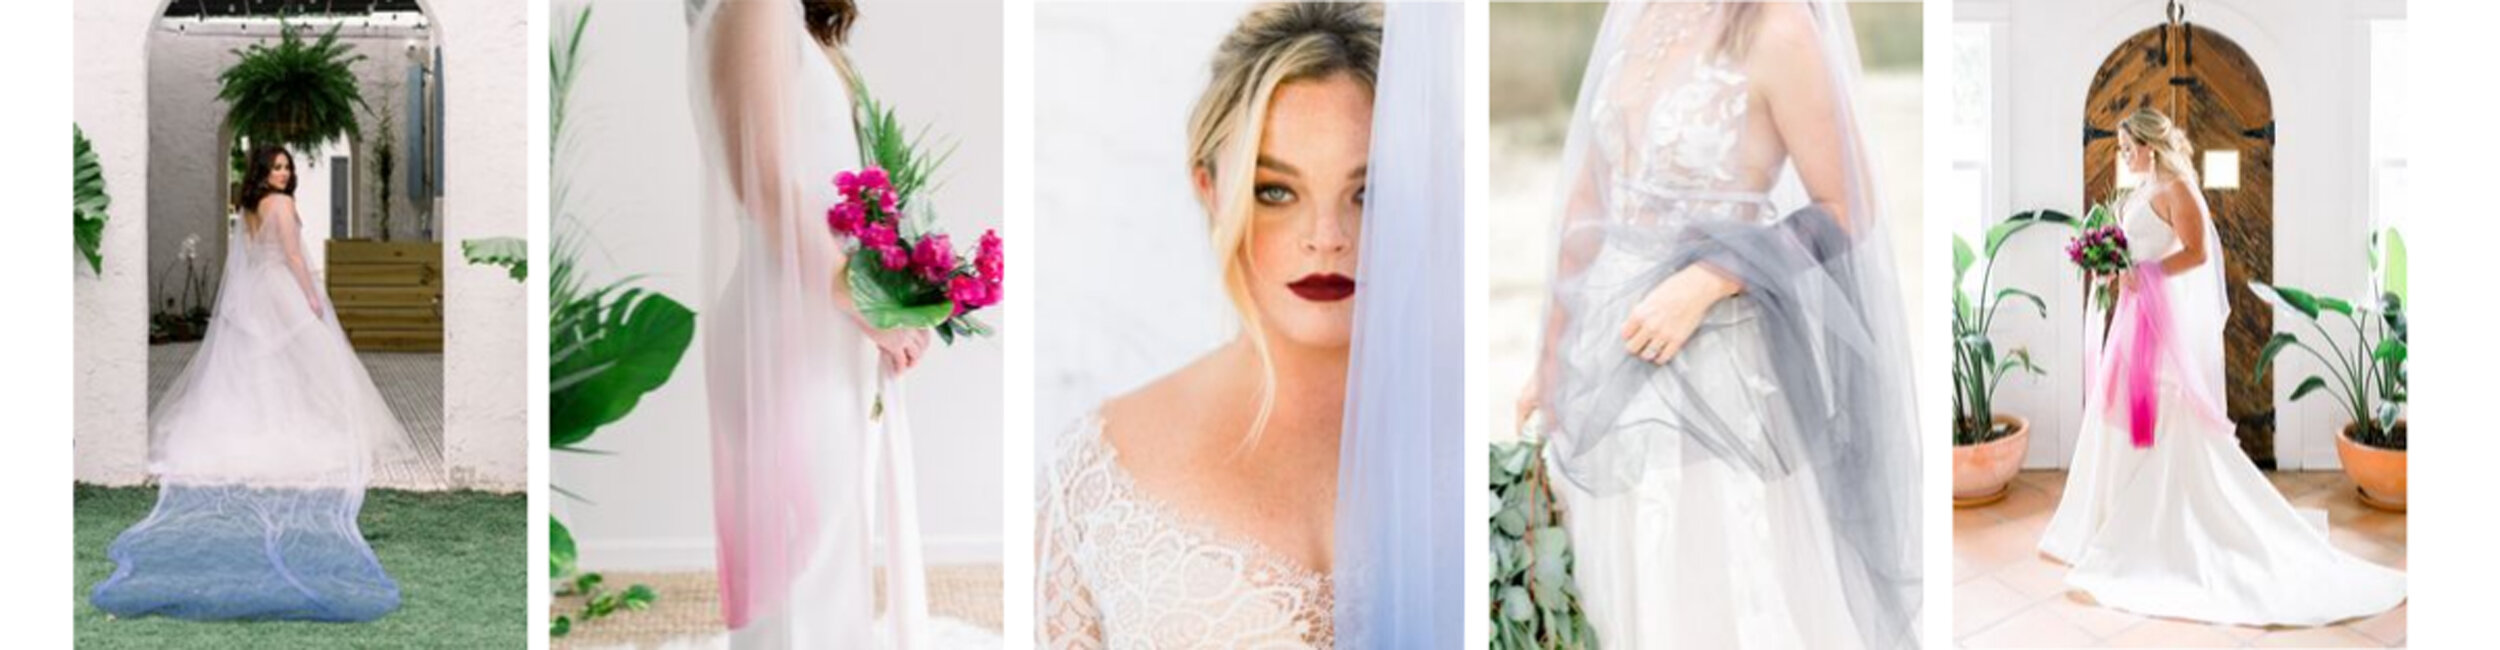 Ombre Wedding, Ombre Veil, Champagne and GRIT.jpg